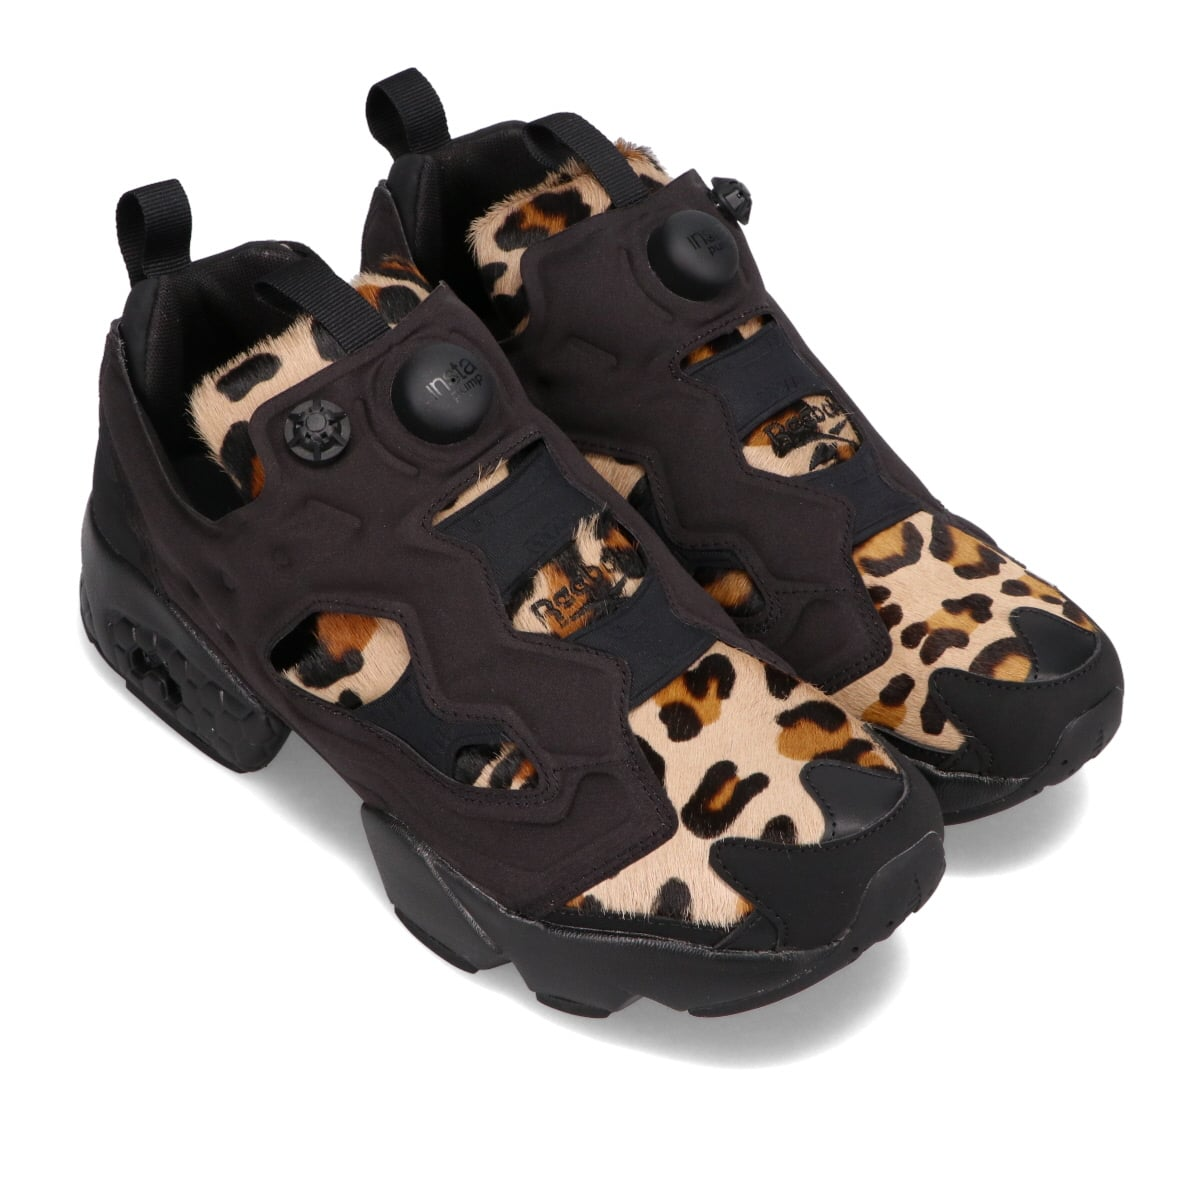 Reebok INSTAPUMP FURY - ANIMAL PACK ブラック/ブラック/ブラック 20FW-S_photo_large